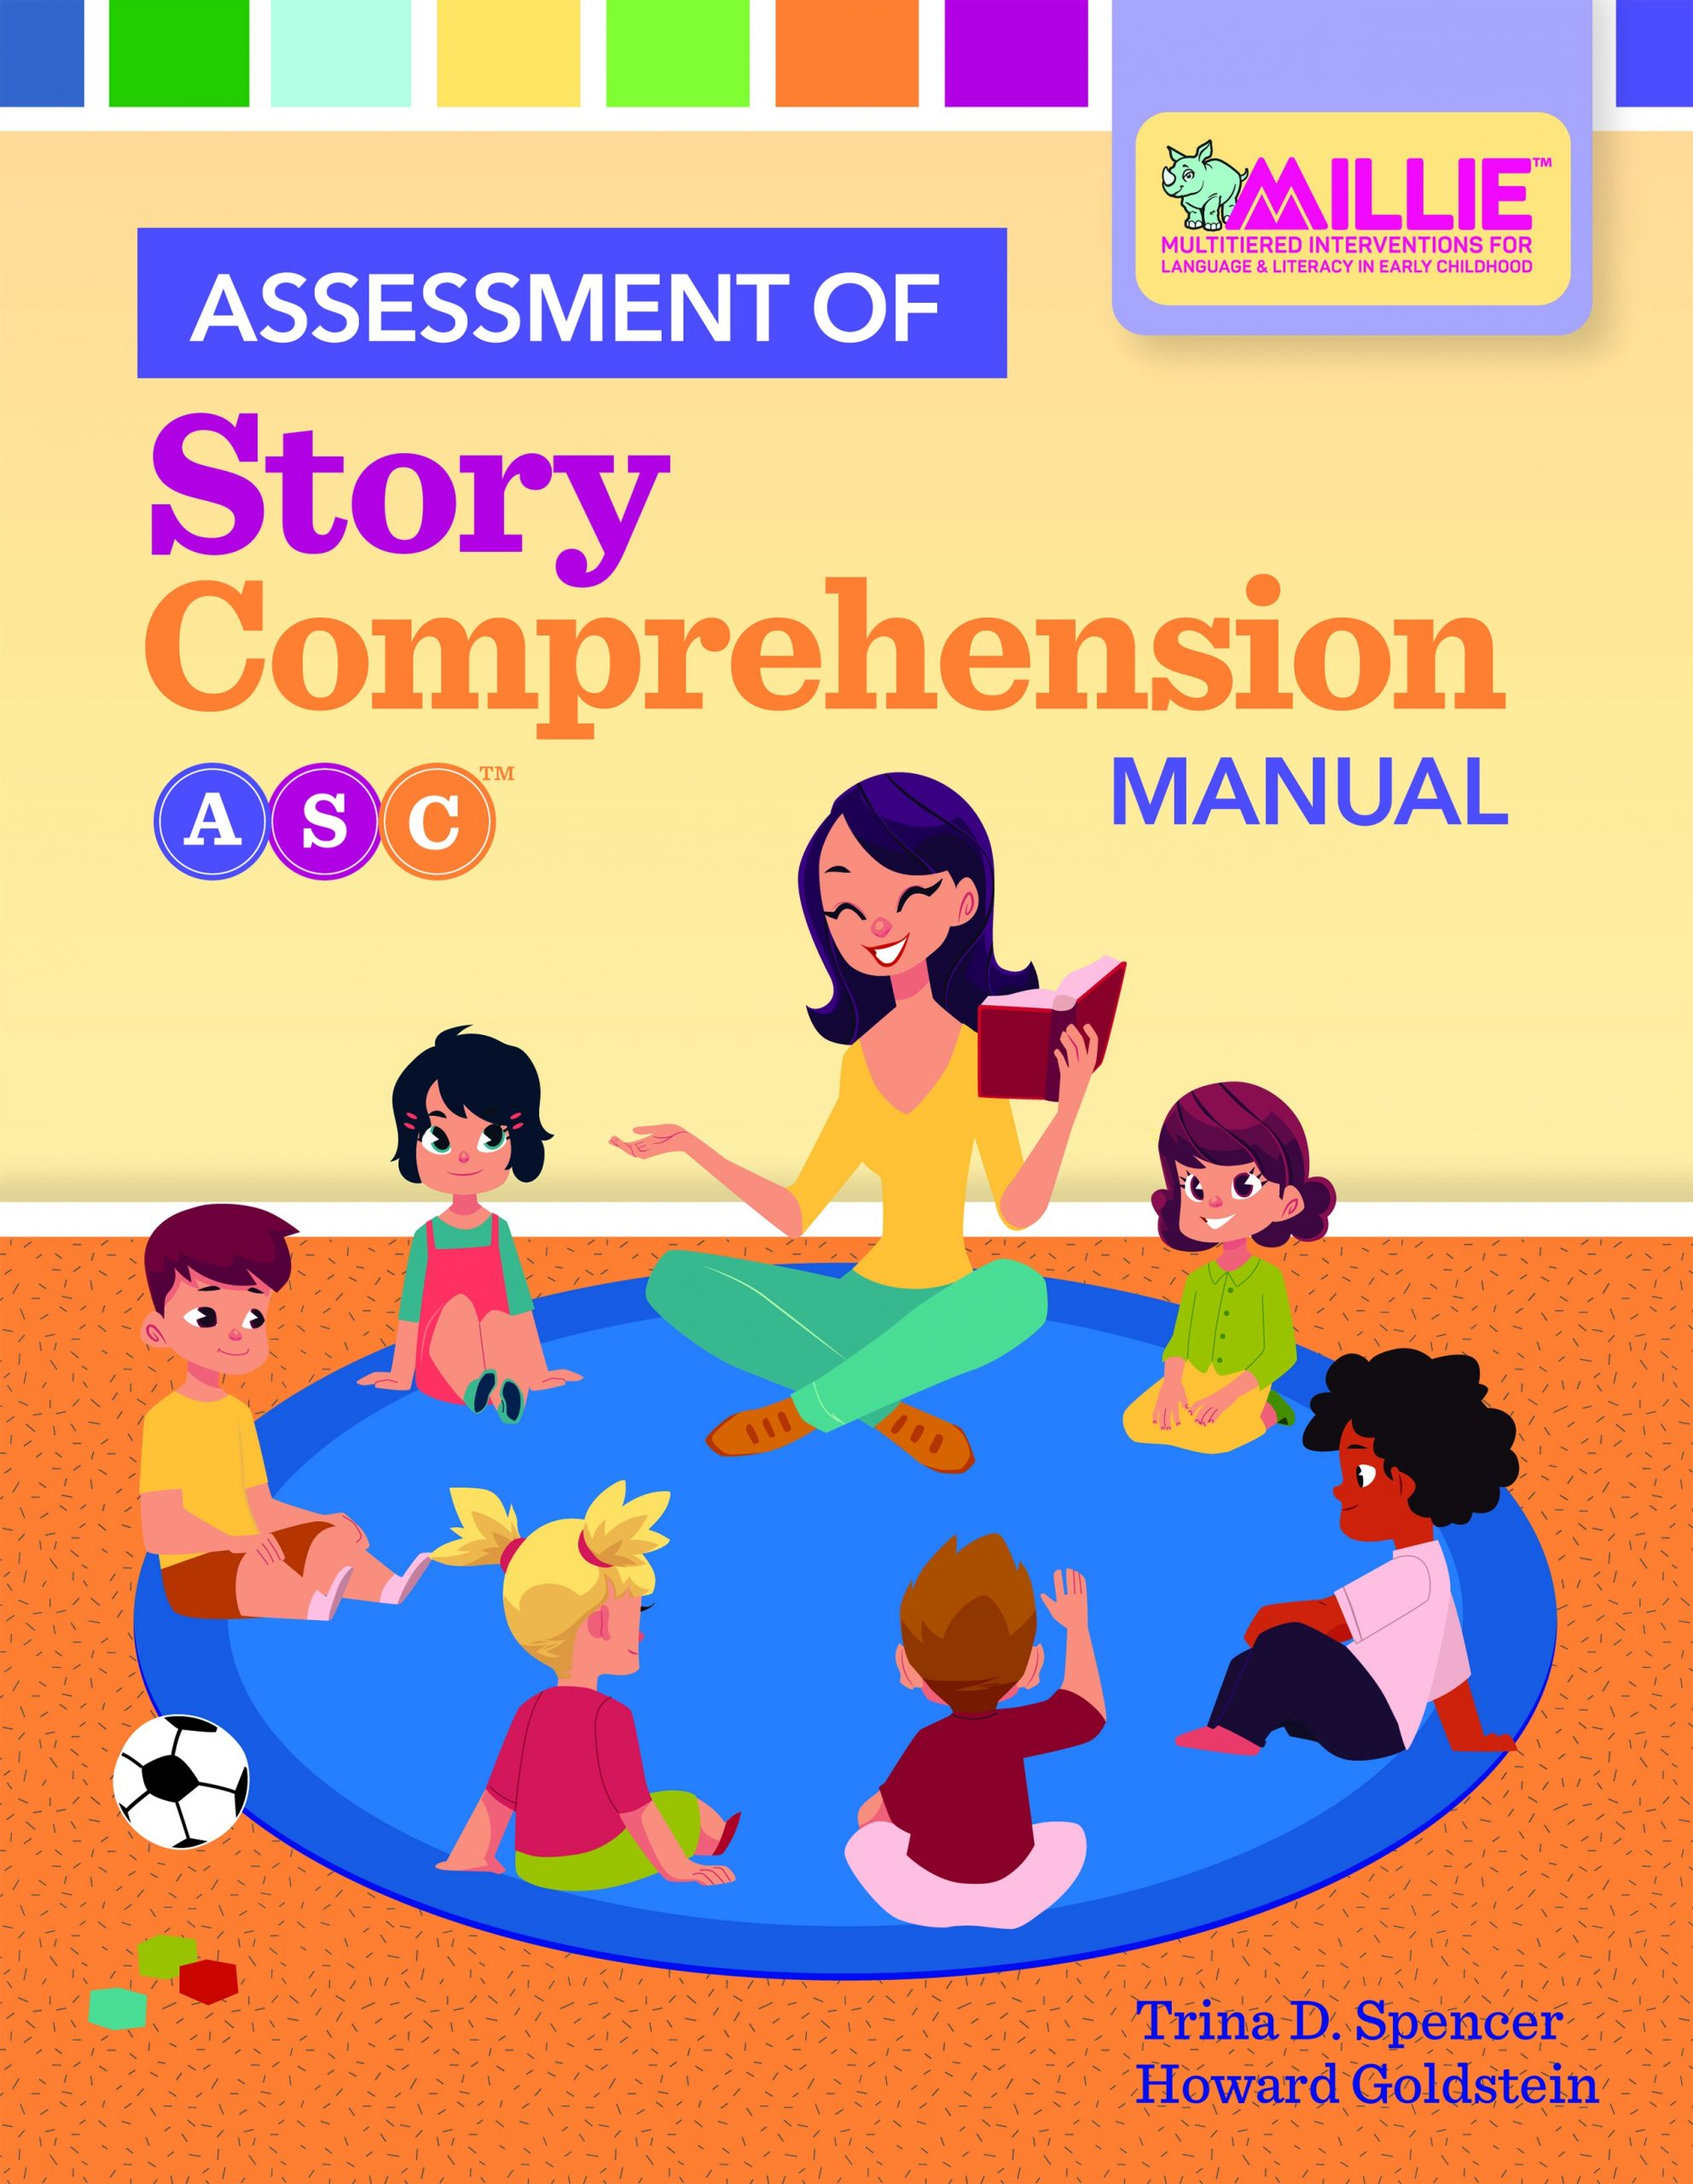 Assessment of Story Comprehension - ASC